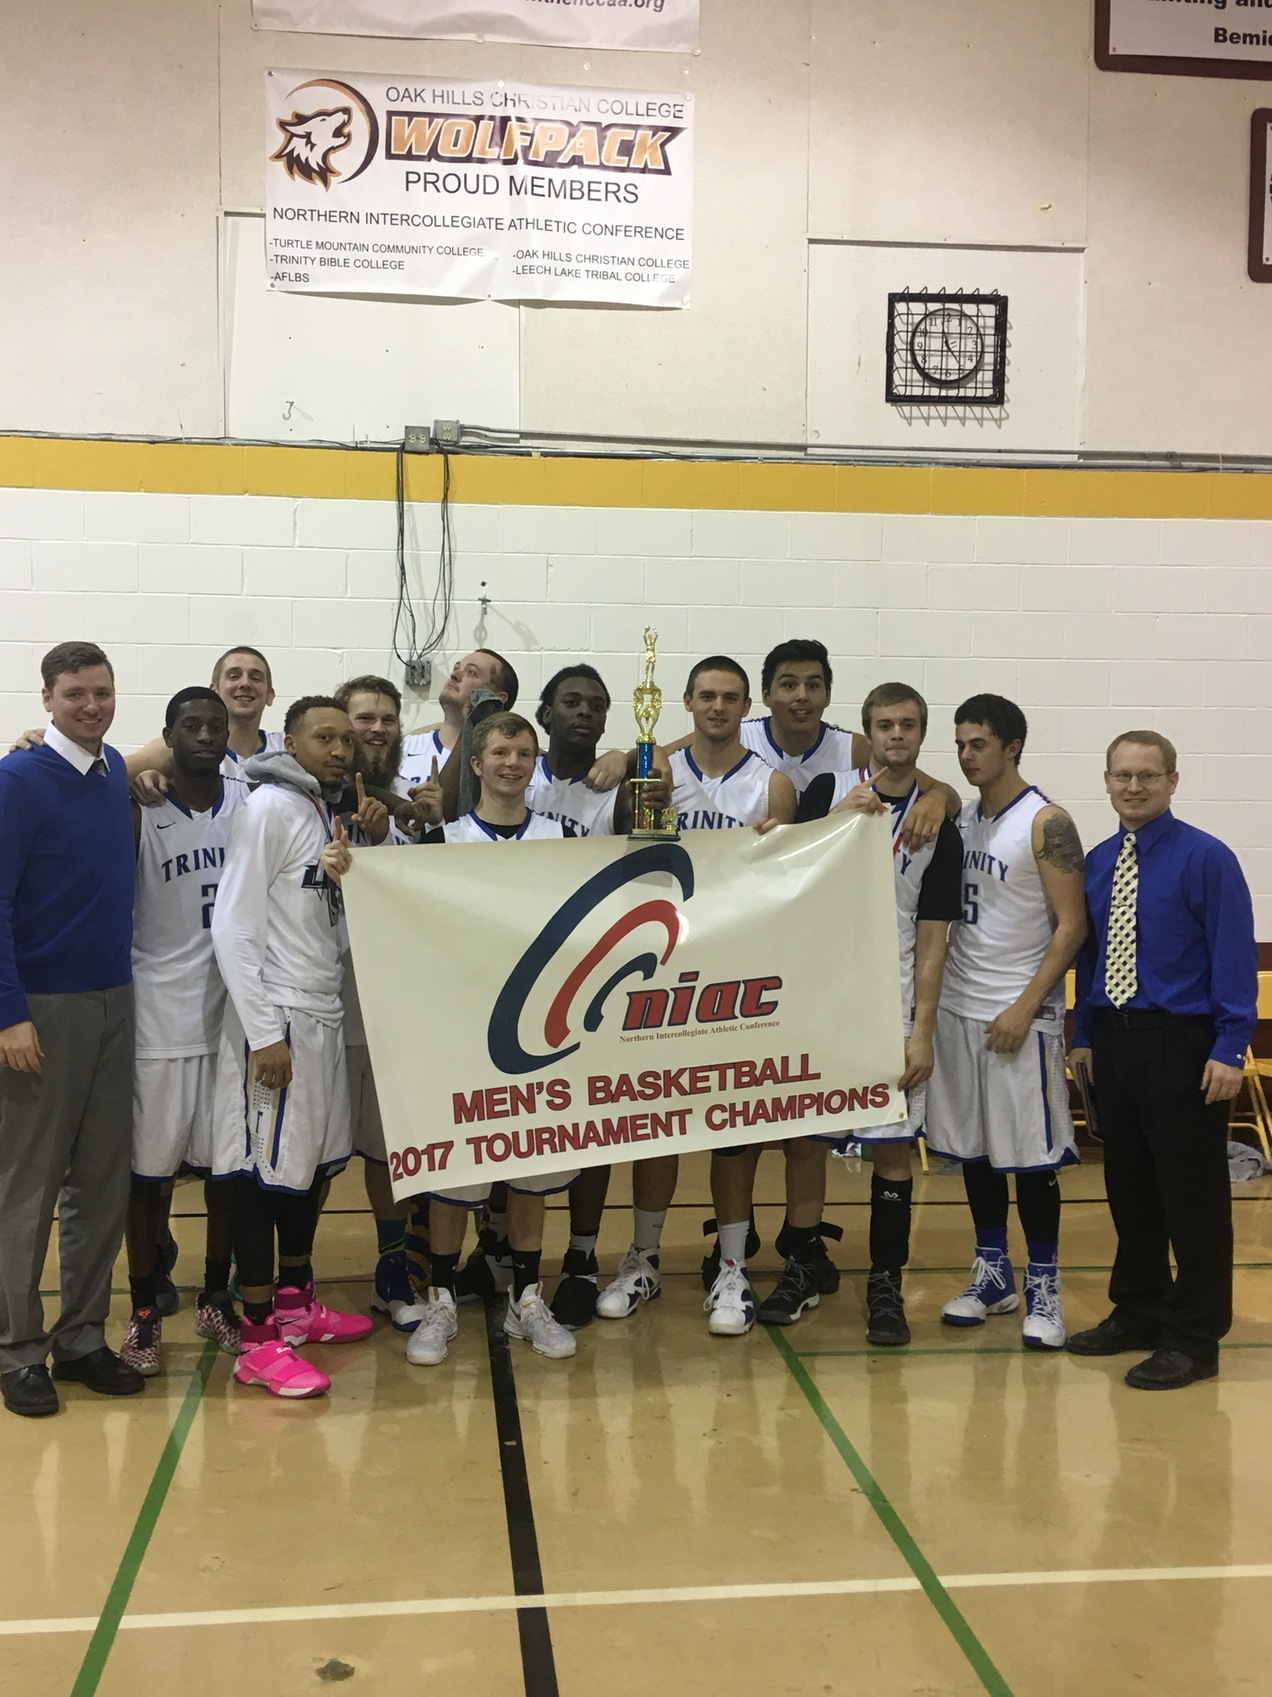 Lions MBB Takes Home NIAC Conference Championship